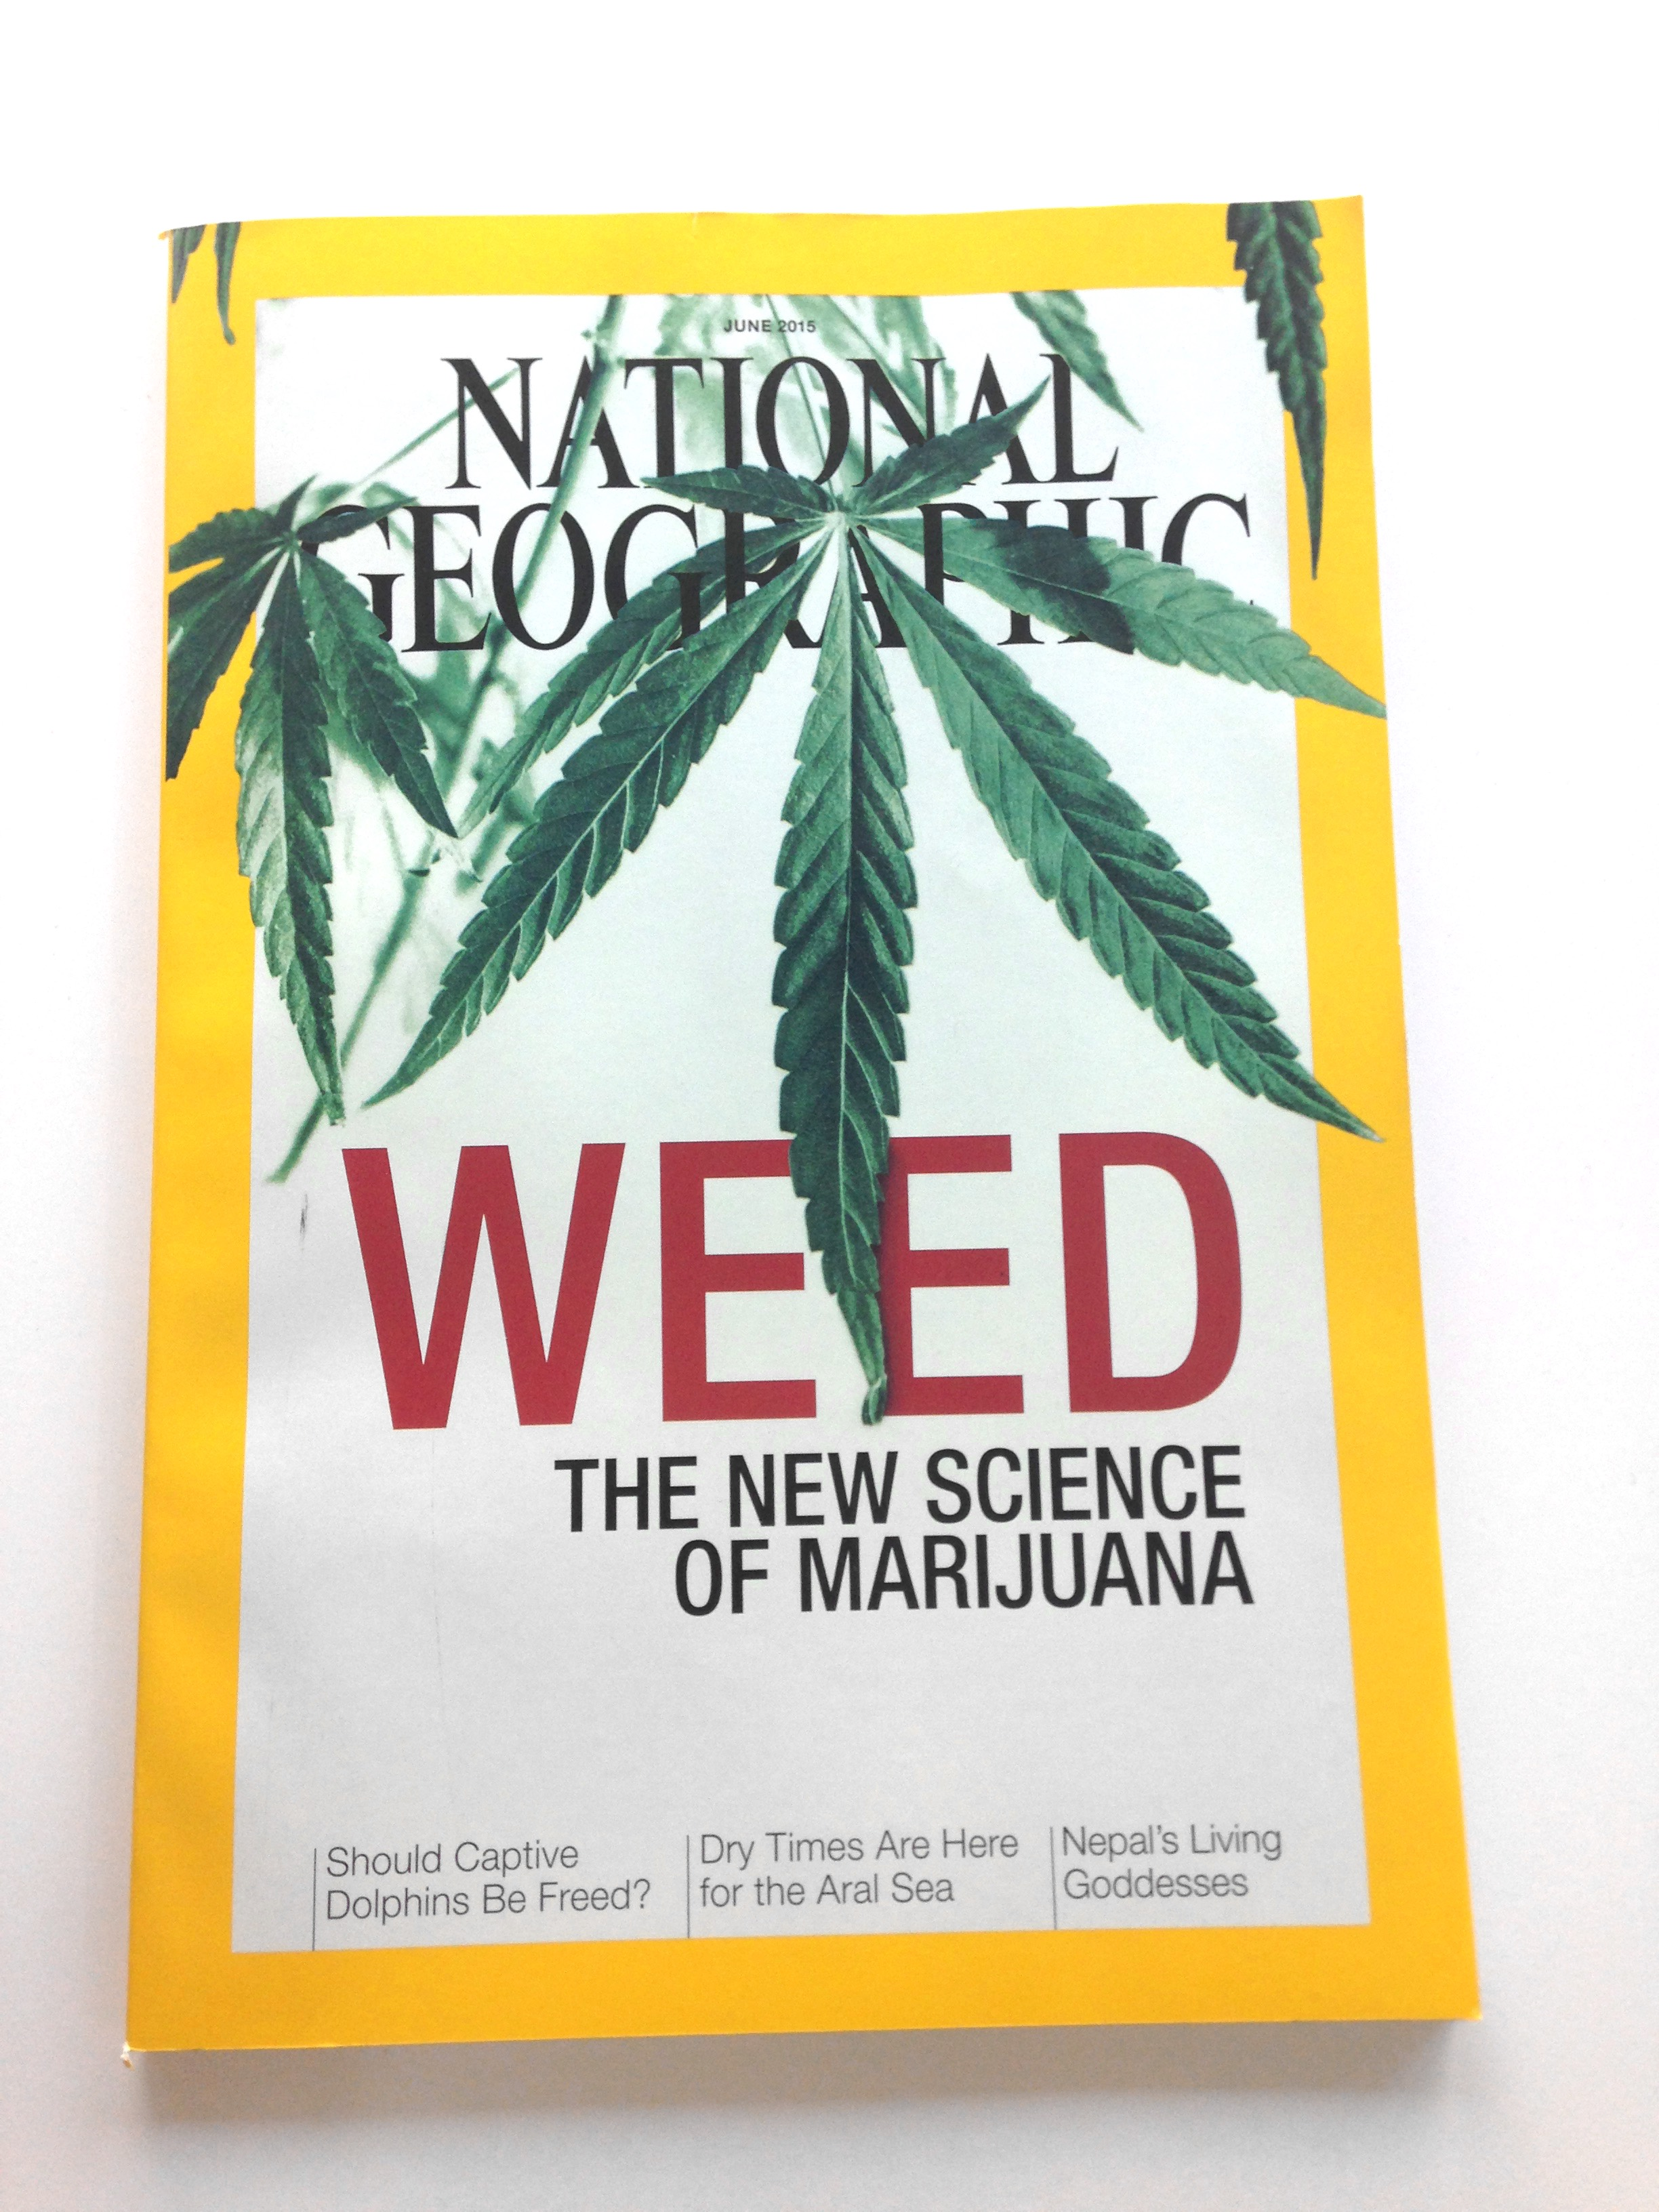 National Geographic loves weed so much, they're devoting an entire print issue to it